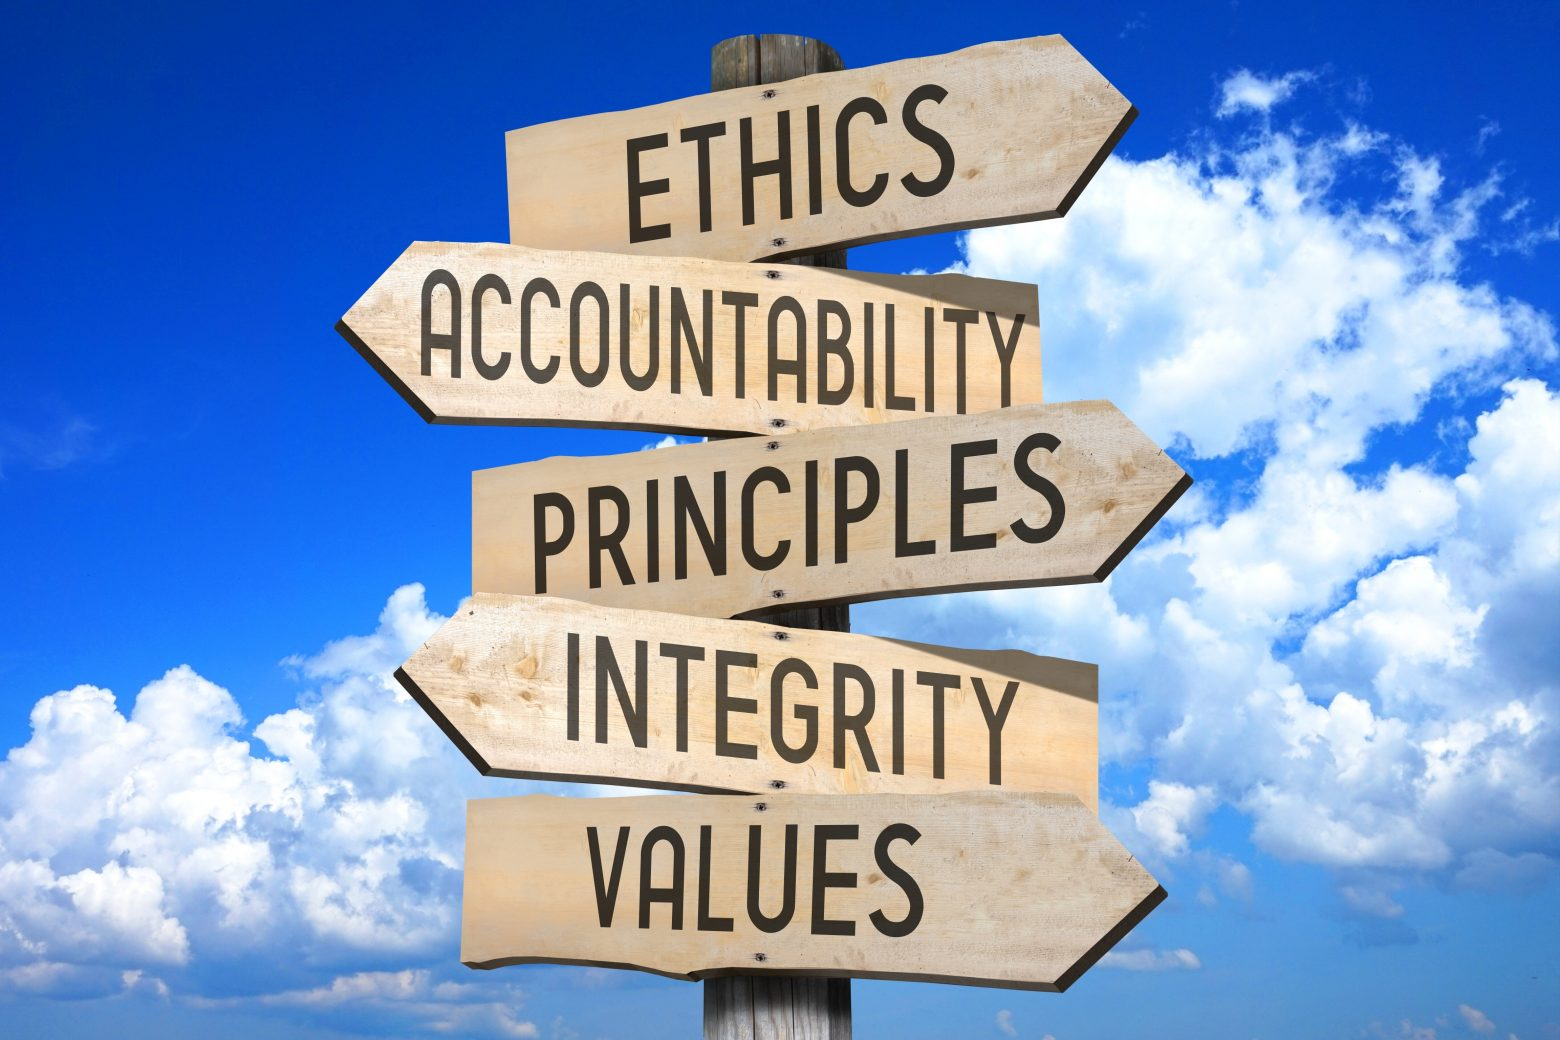 This is a signpost that shows elements of what is needed to develop an ethical decision-making model: ethics, accountability, principles, integrity, and values